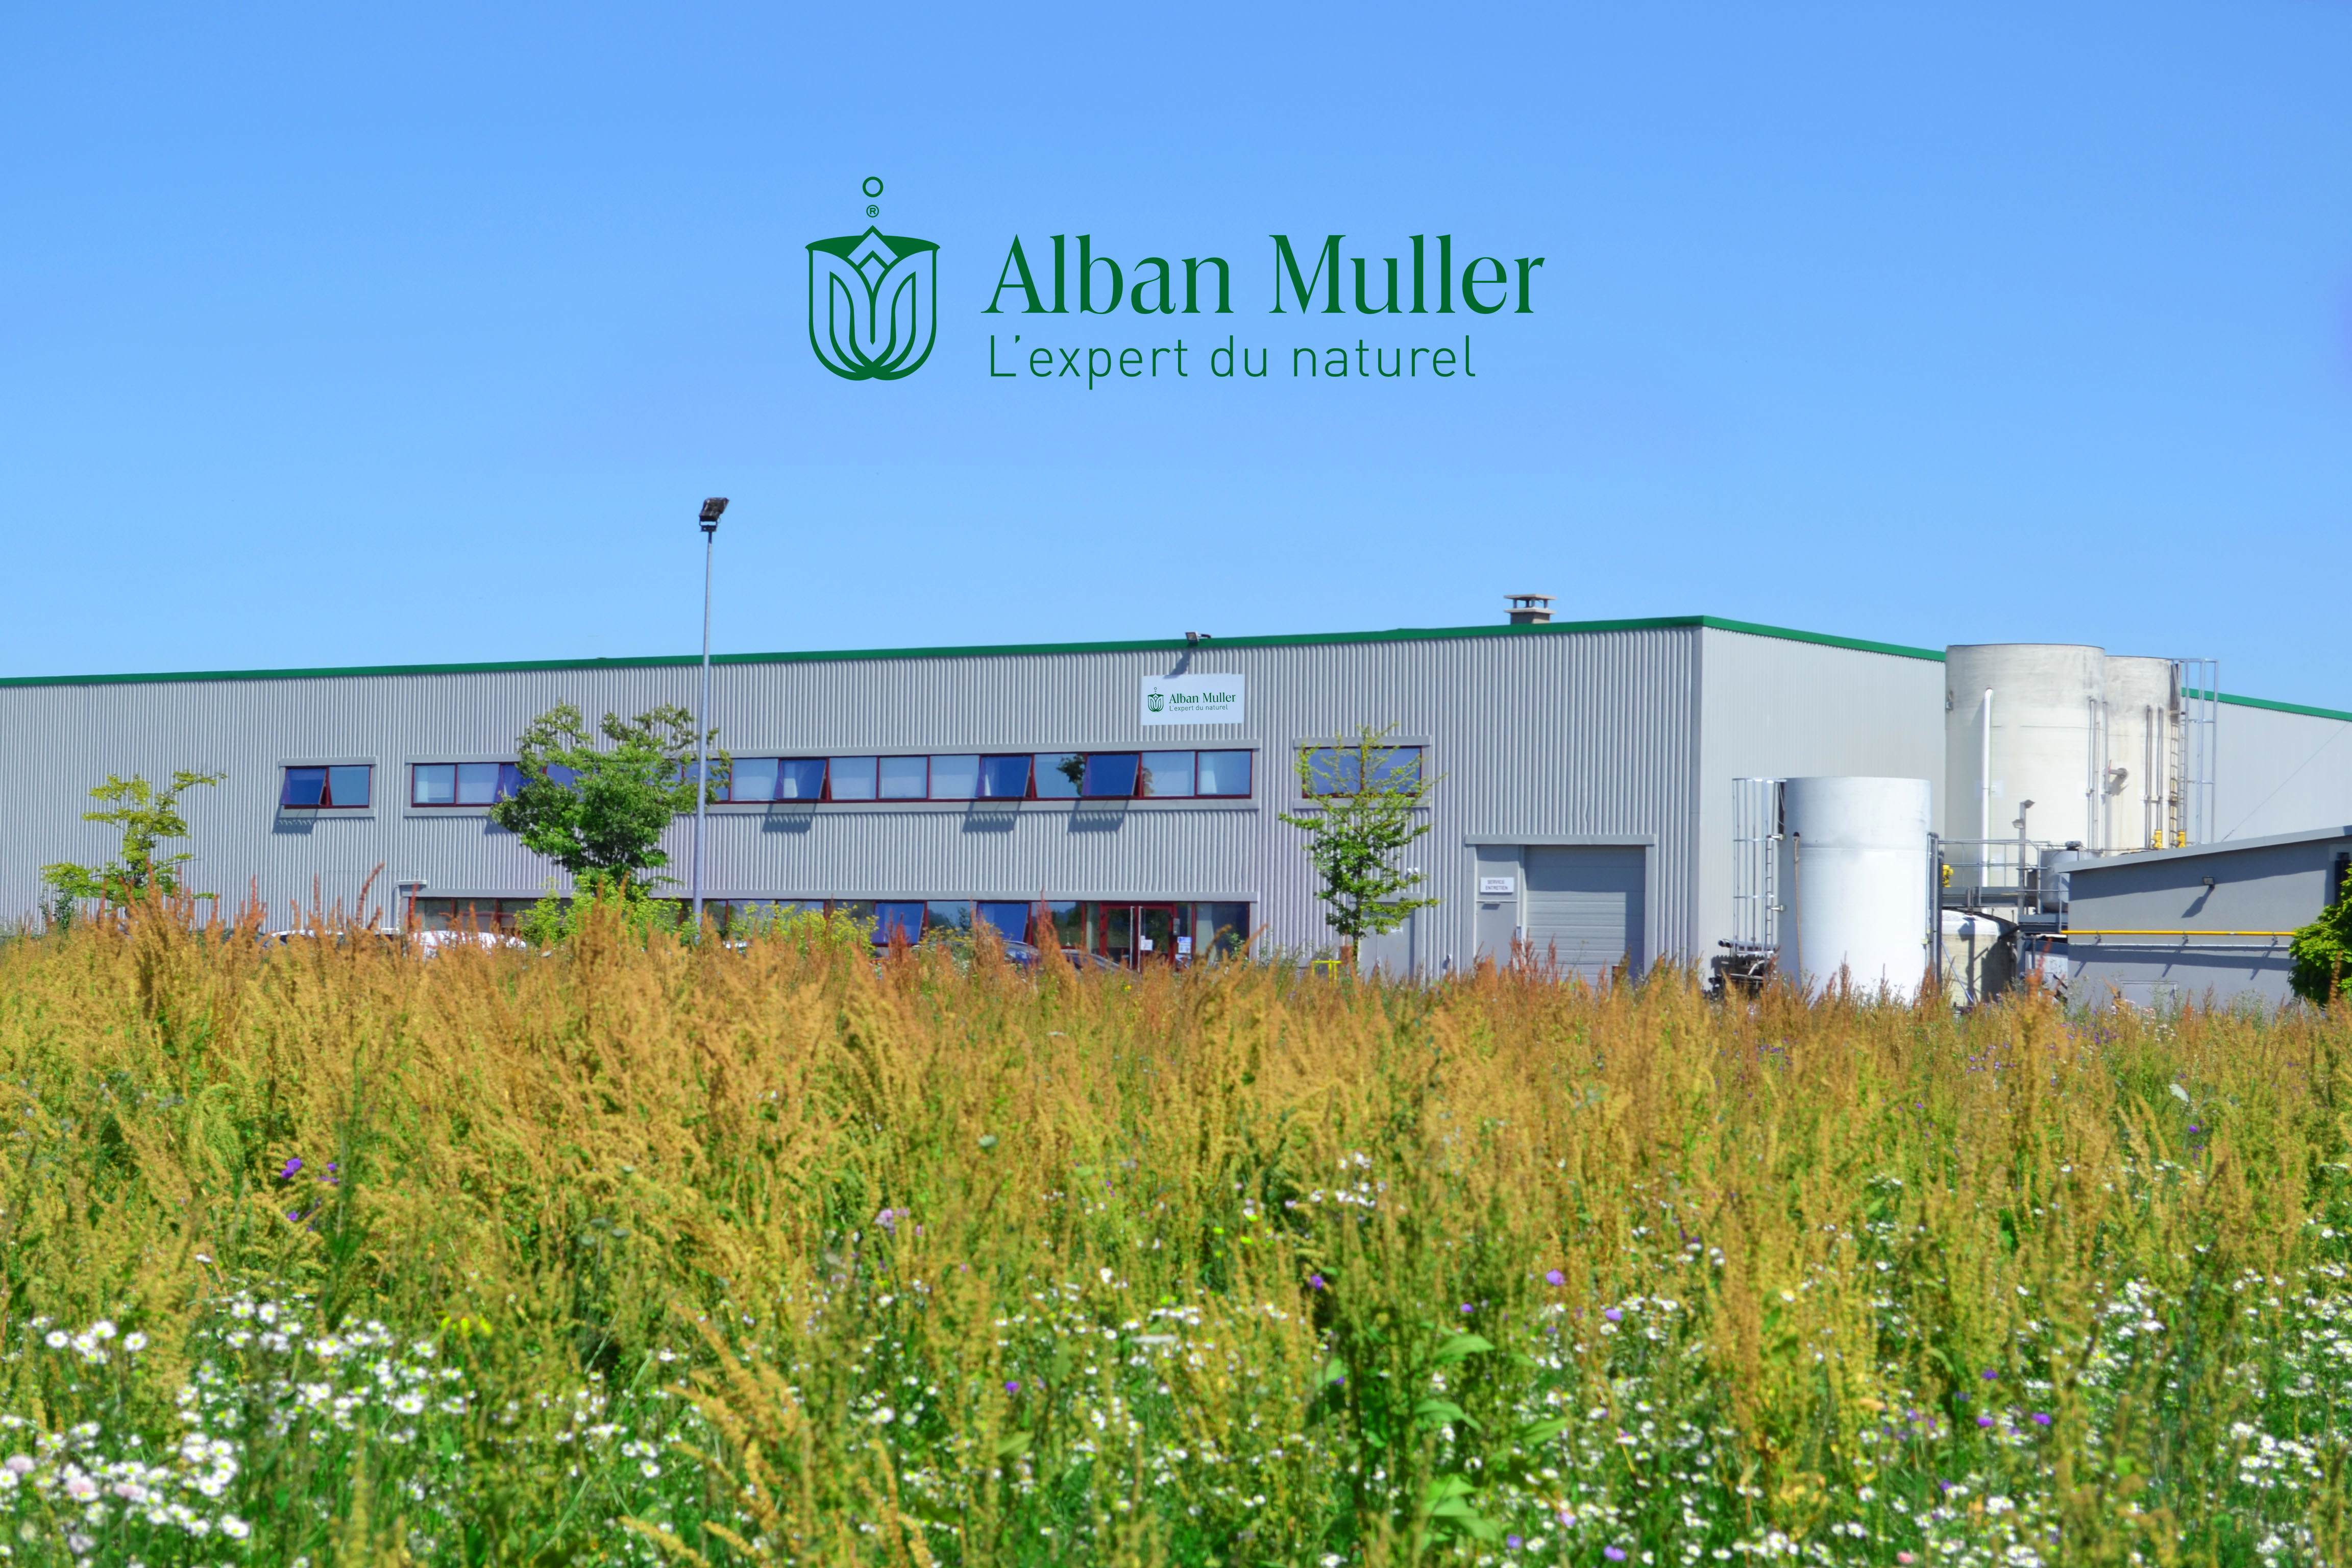 Image of Alban Muller Plant, a leader in natural and botanical ingredients for the personal care industry, acquired by Croda International